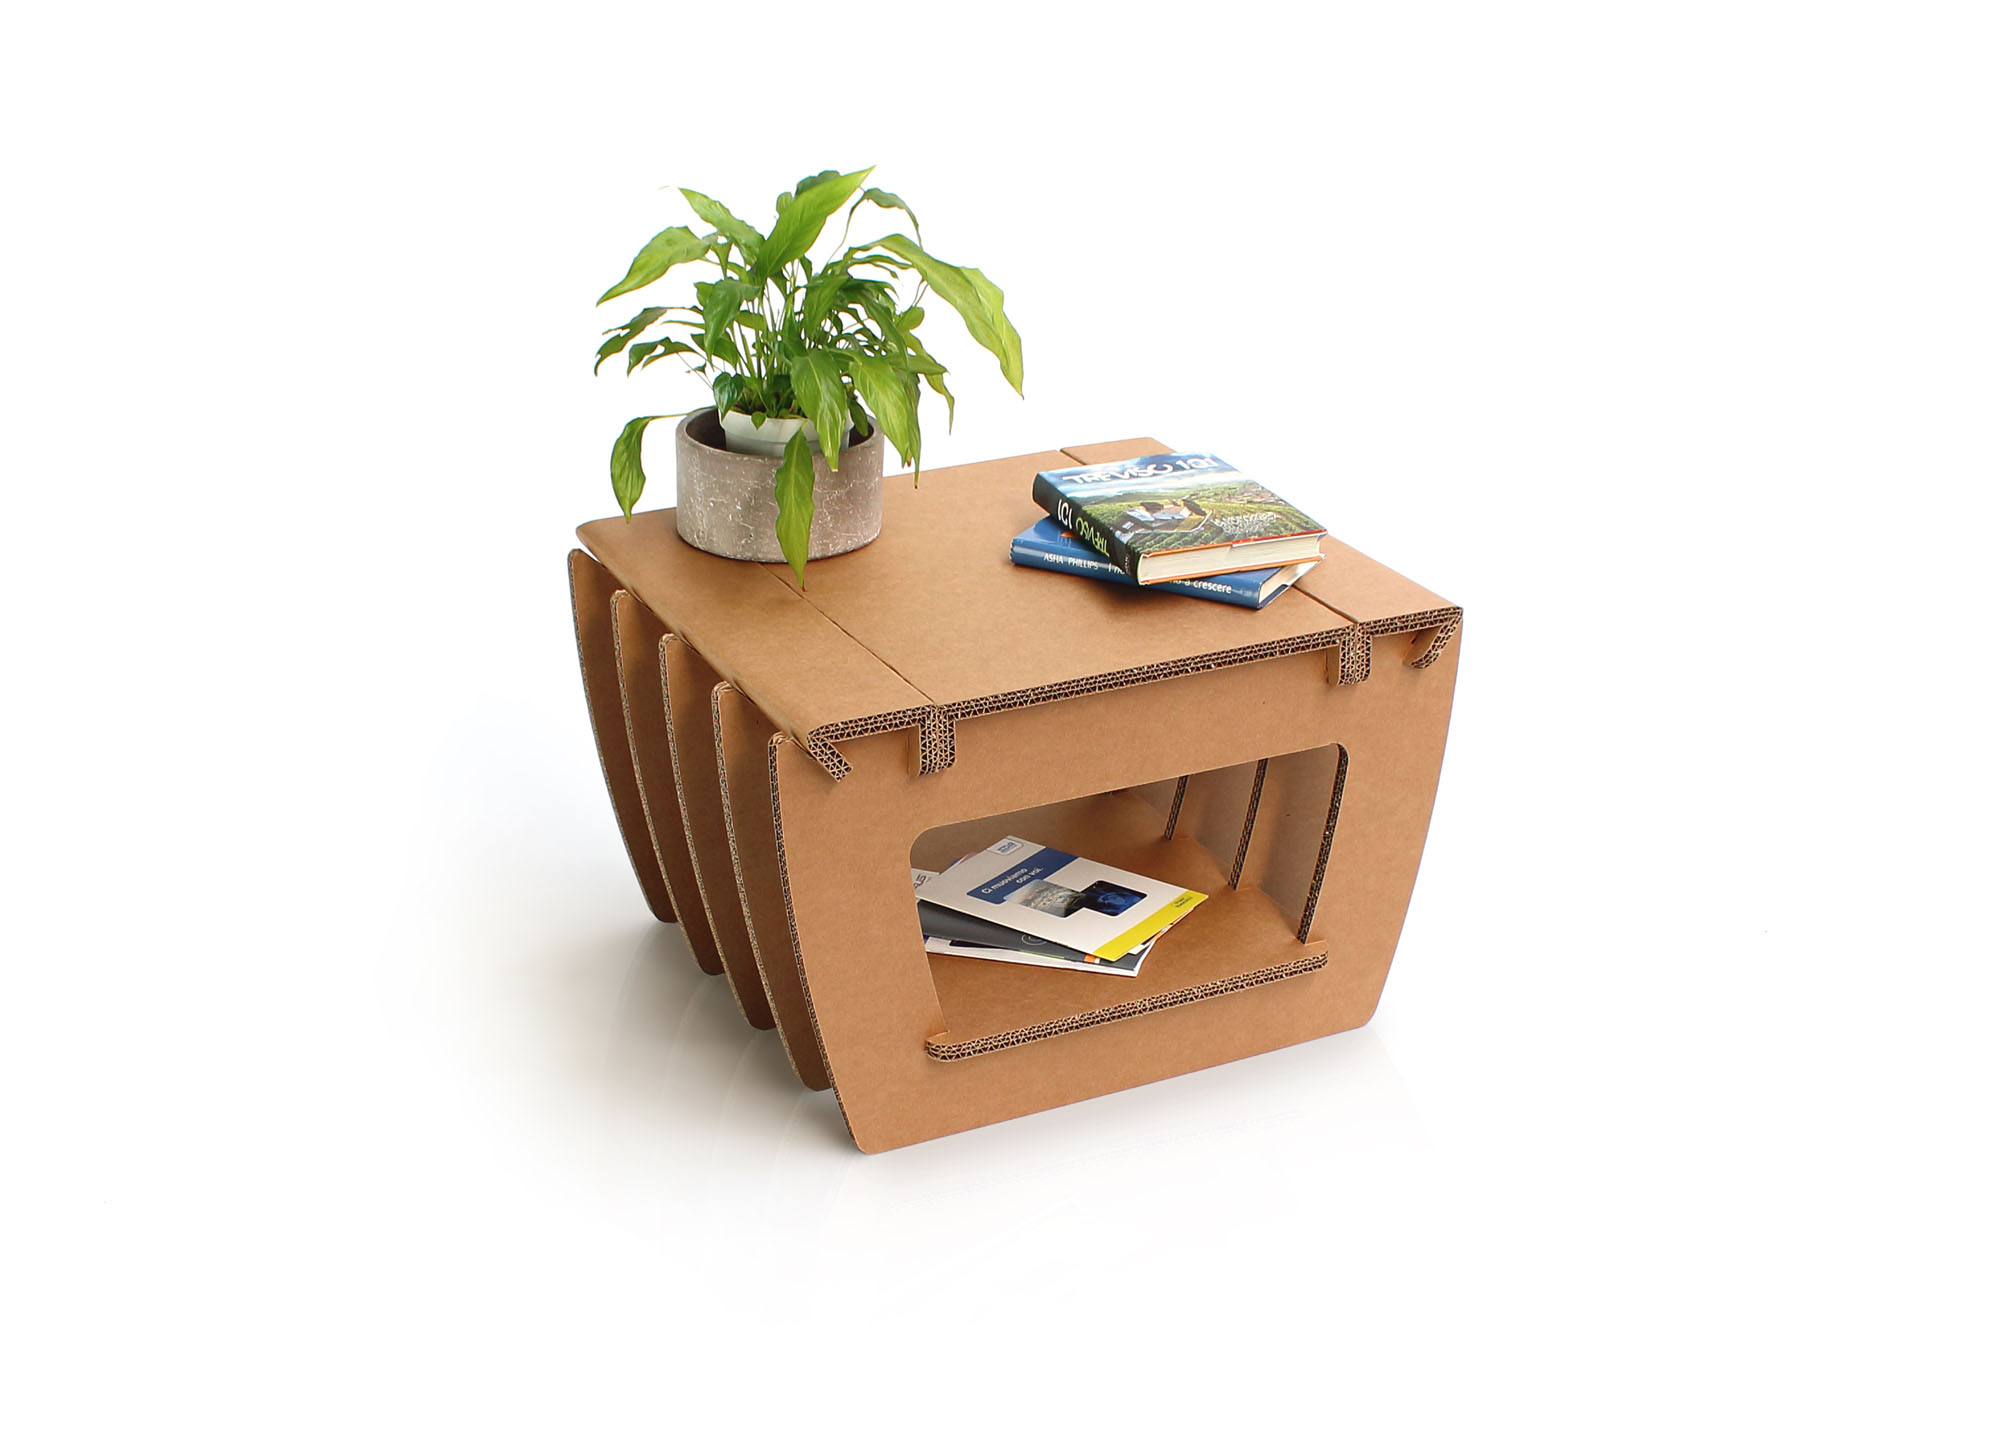 Vente tables basses mobilier en carton montpellier 34 n mes 30 - Table basse en carton ...